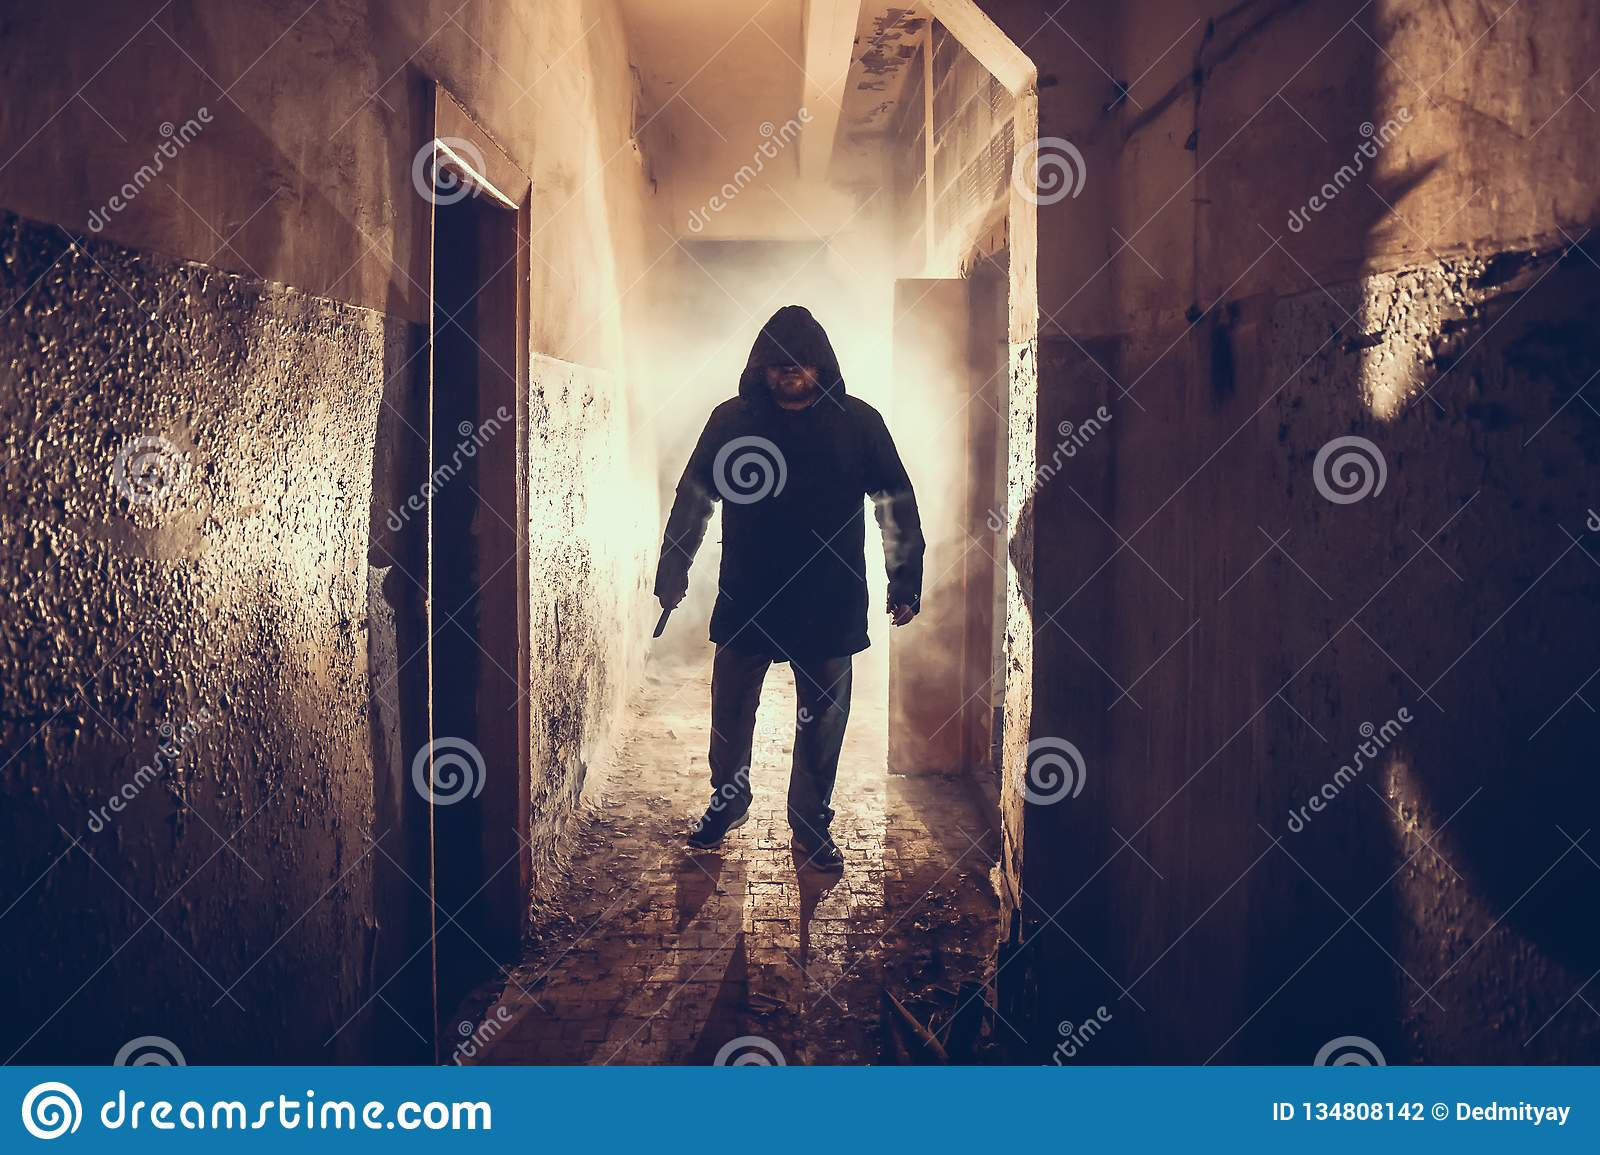 Dark silhouette of strange danger man with knife in hand in scary grunge corridor or tunnel